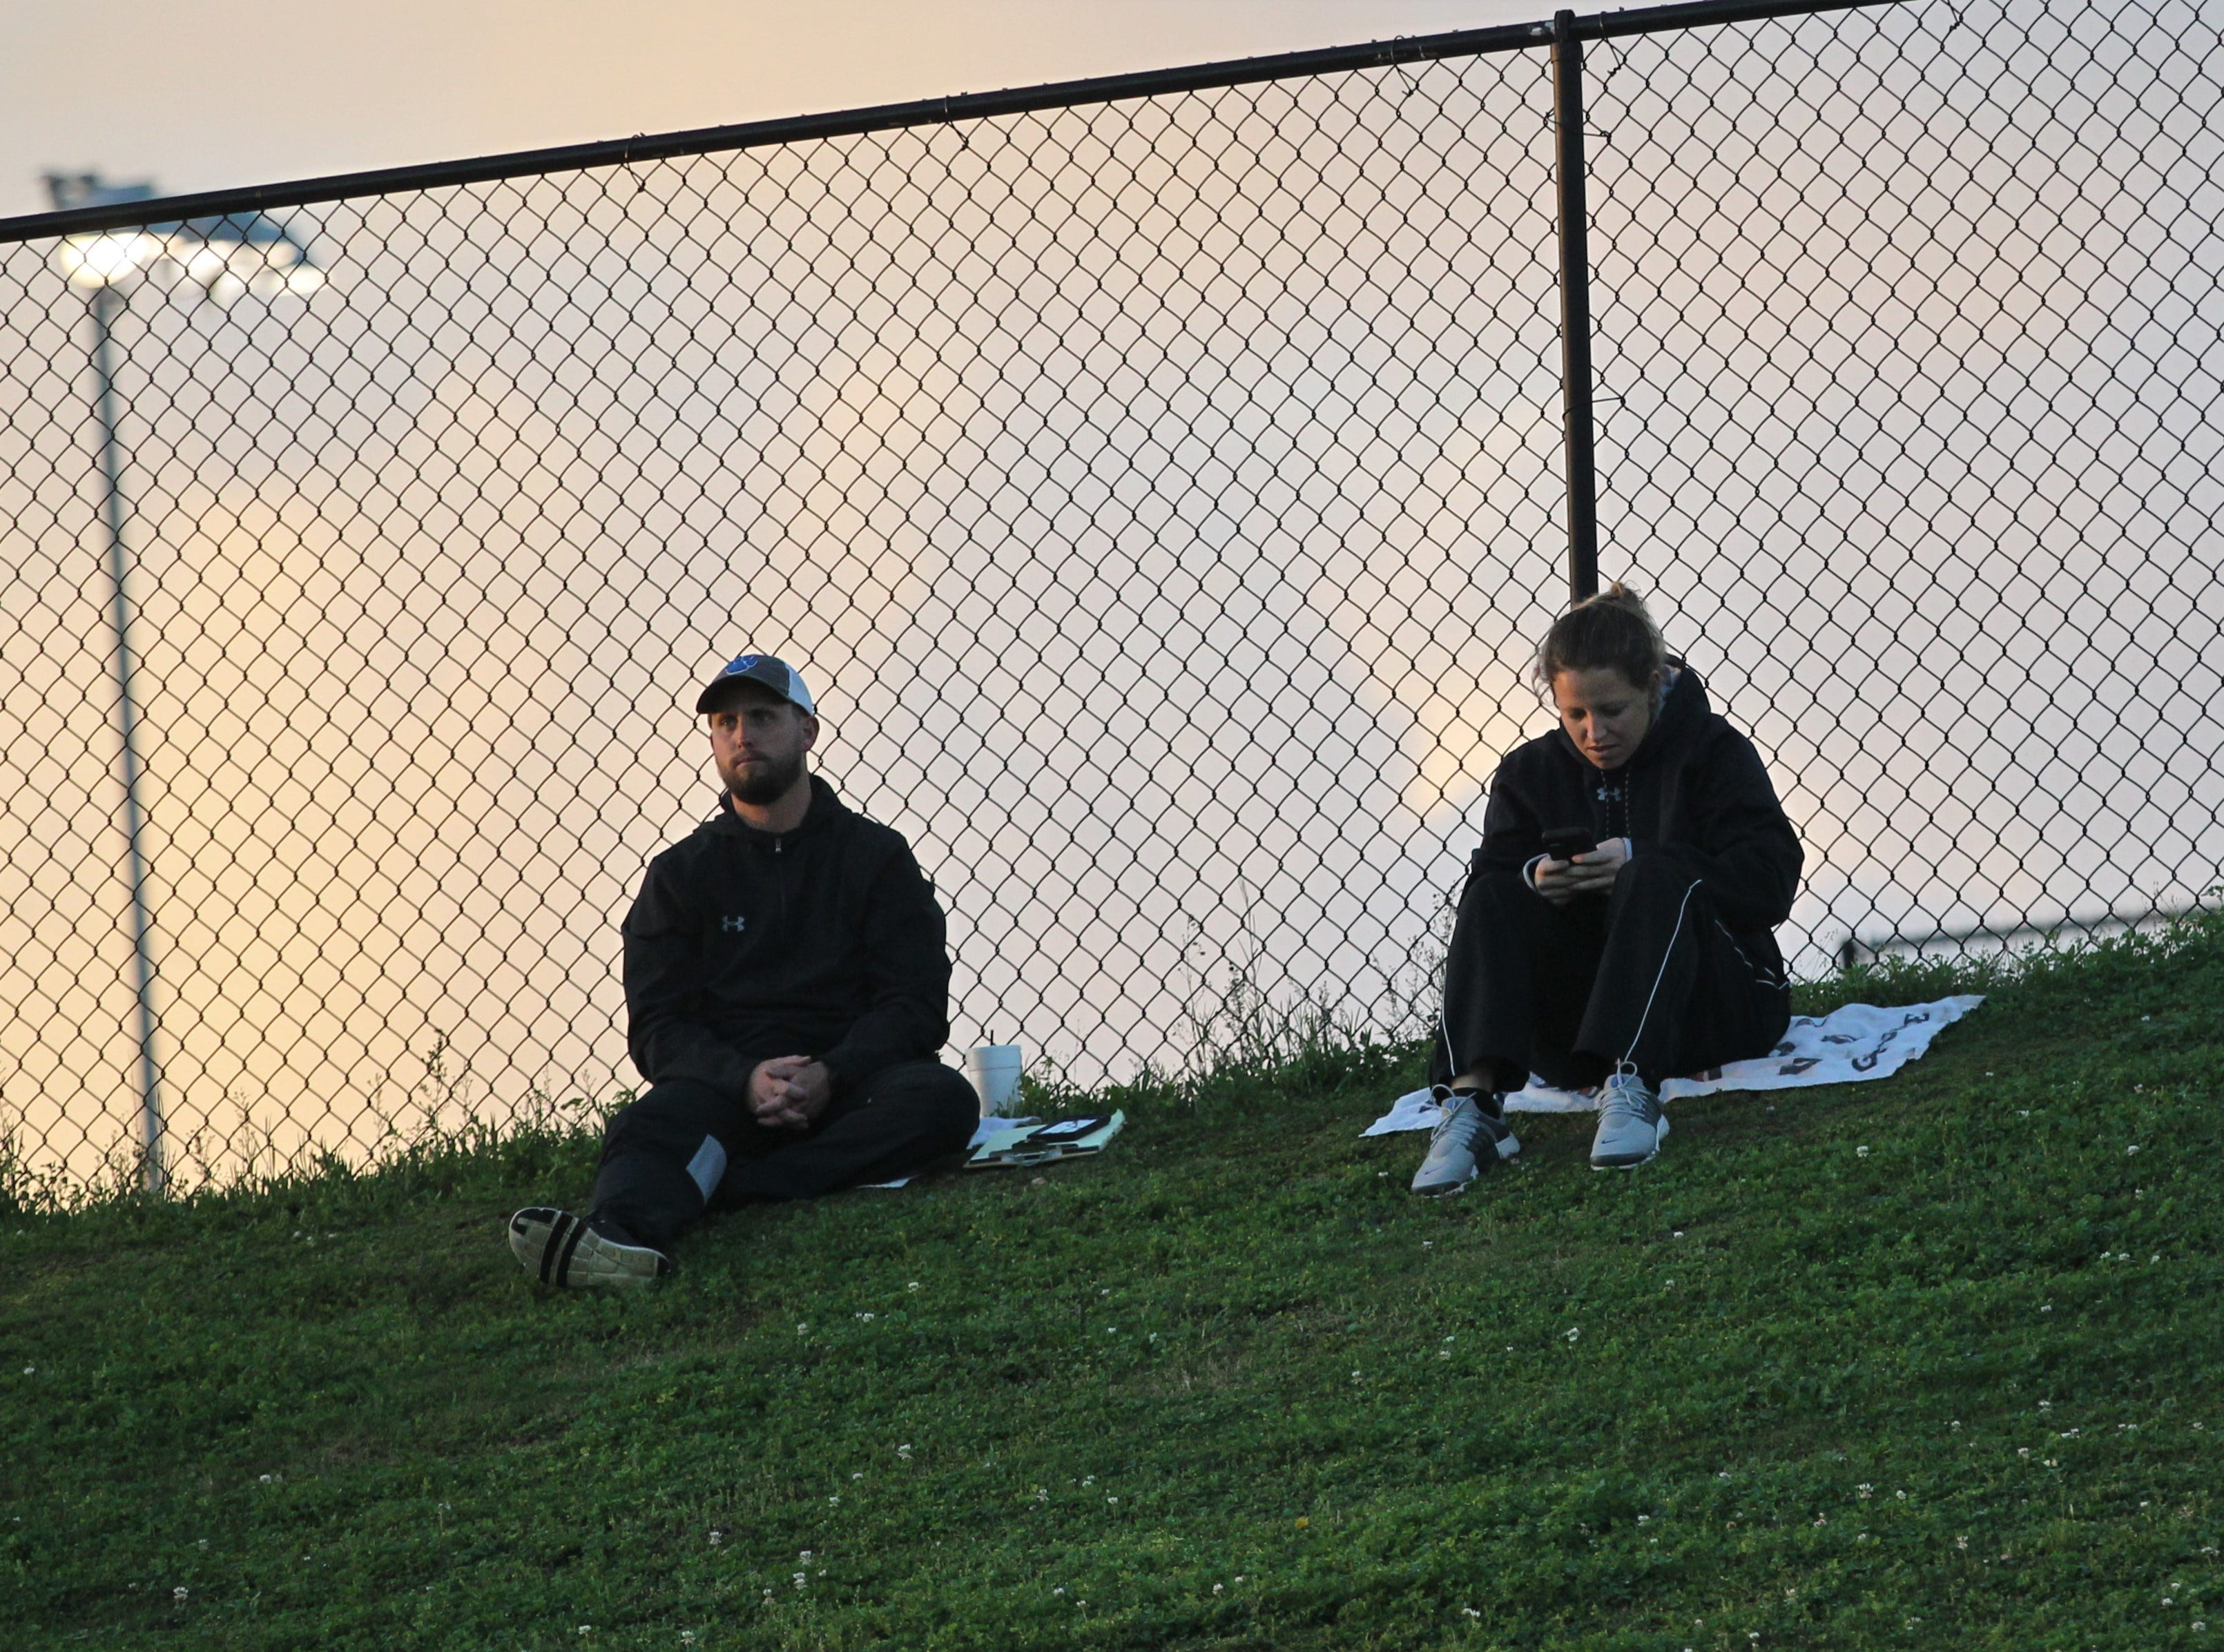 Godby coaches Chelsea Parmer and Ricky Hufty watch play during the 2019 flag football preseason classic at Florida A&M's intramural turf fields on Feb. 27, 2019.